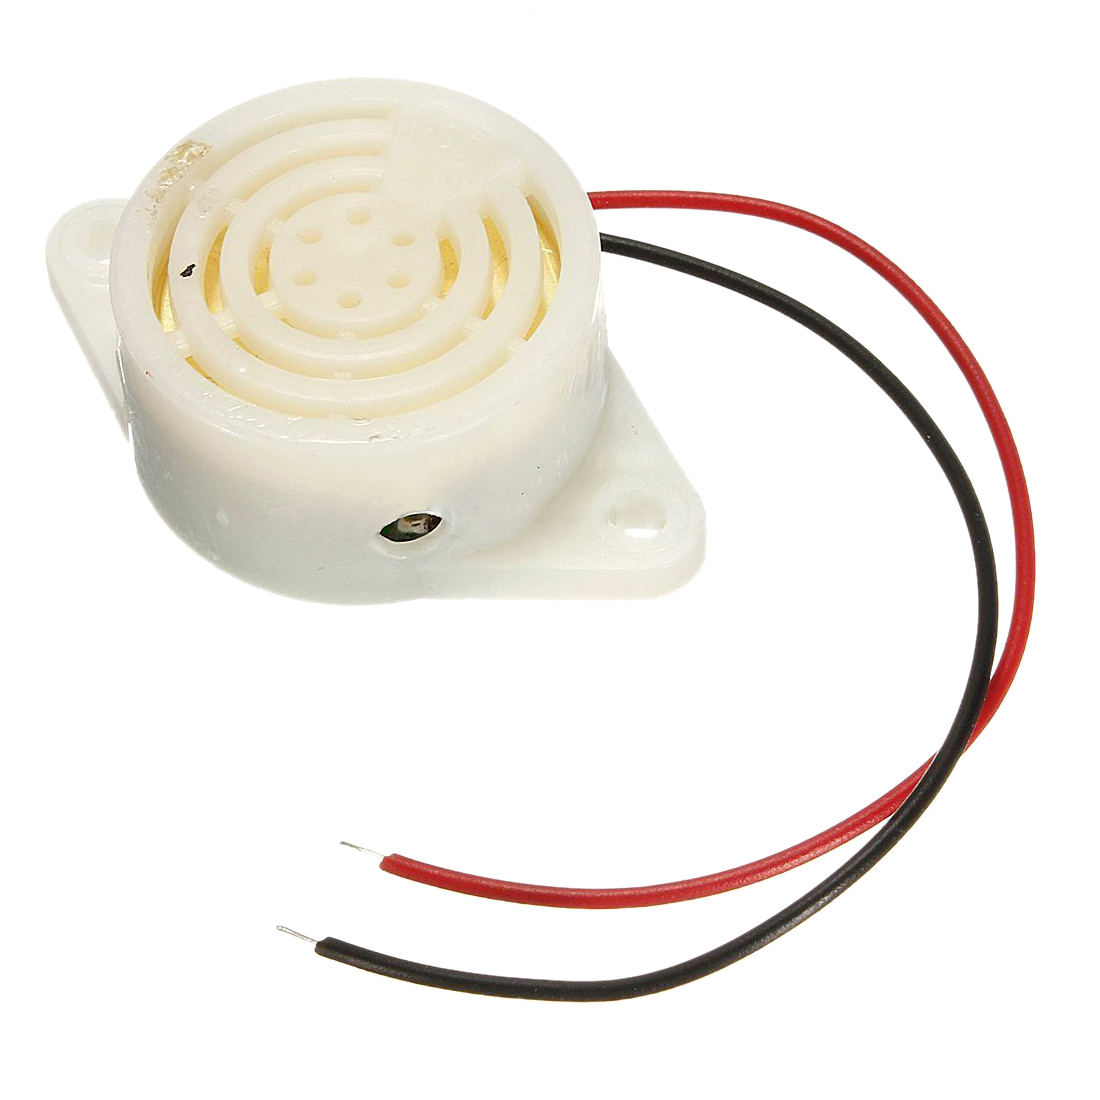 MOOL 95DB 3-24V 12V High-decibel Electronic Buzzer Beep Alarm Intermittent for Arduino сабвуфер урал decibel 12